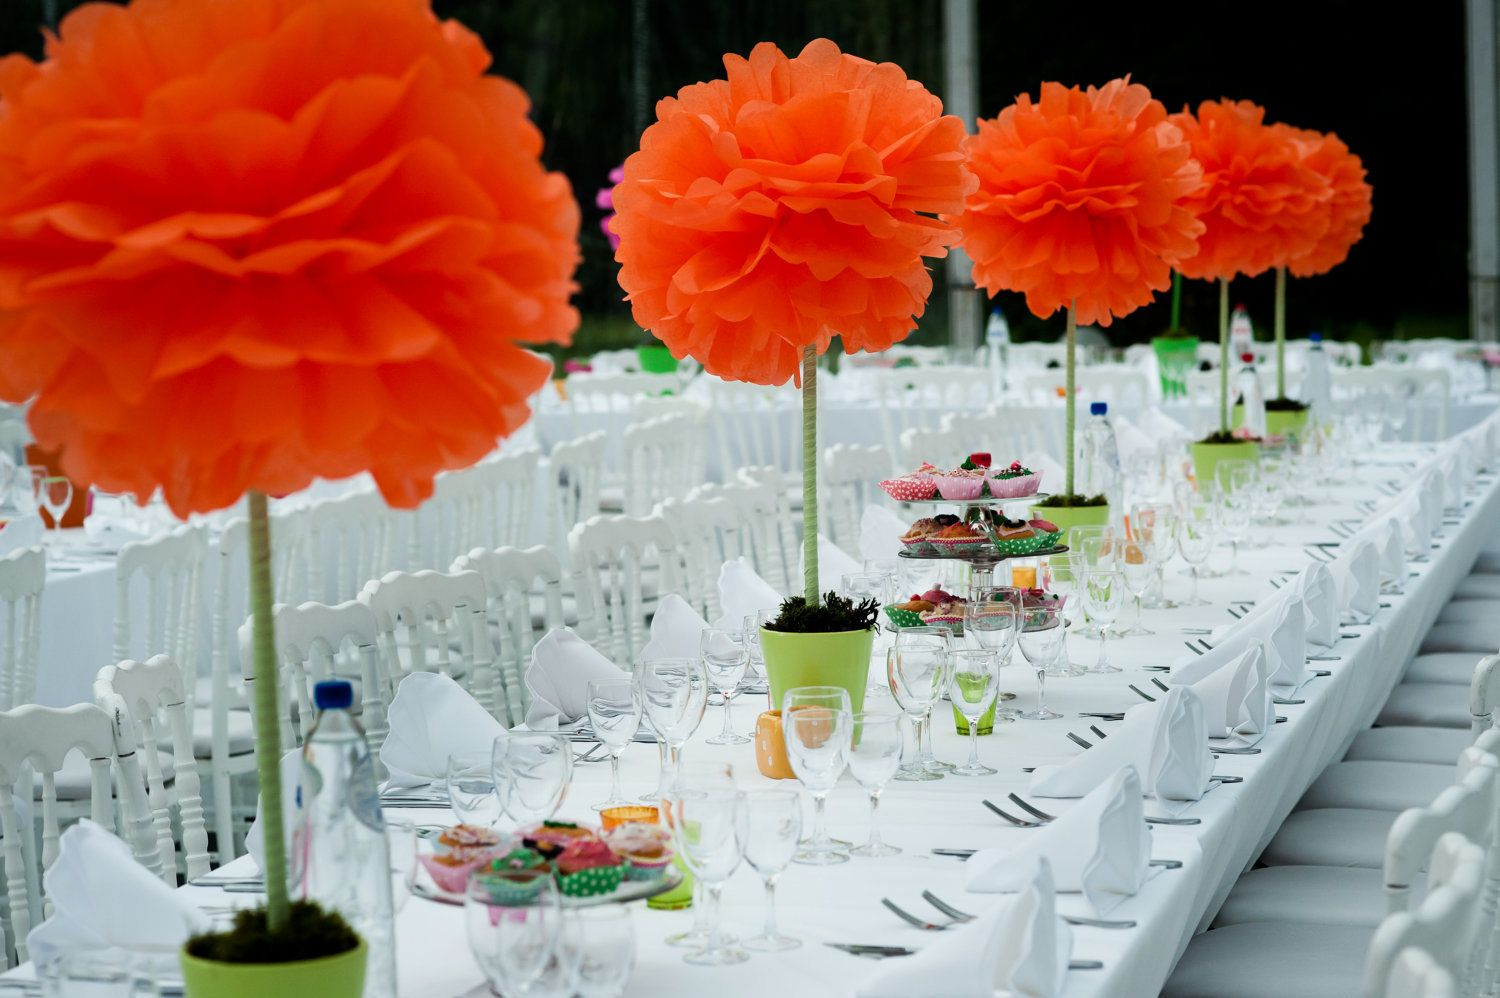 Tissue Paper Flower Centerpieces Topiaries What A Fun Way To Use